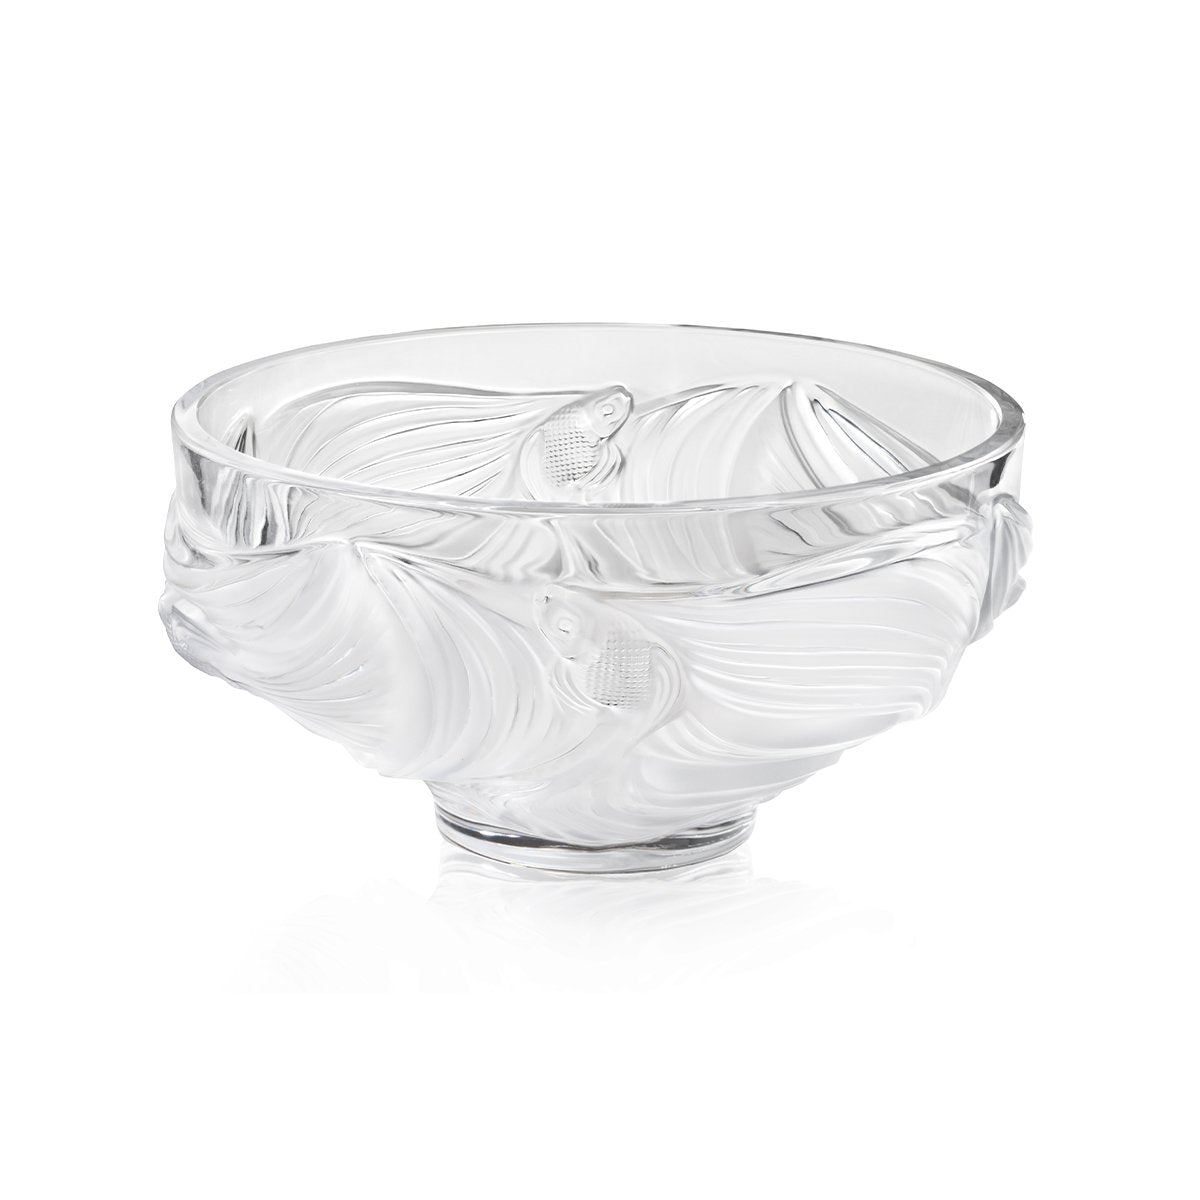 Lalique Large Poisson Combattants Bowl - Hamilton & Inches